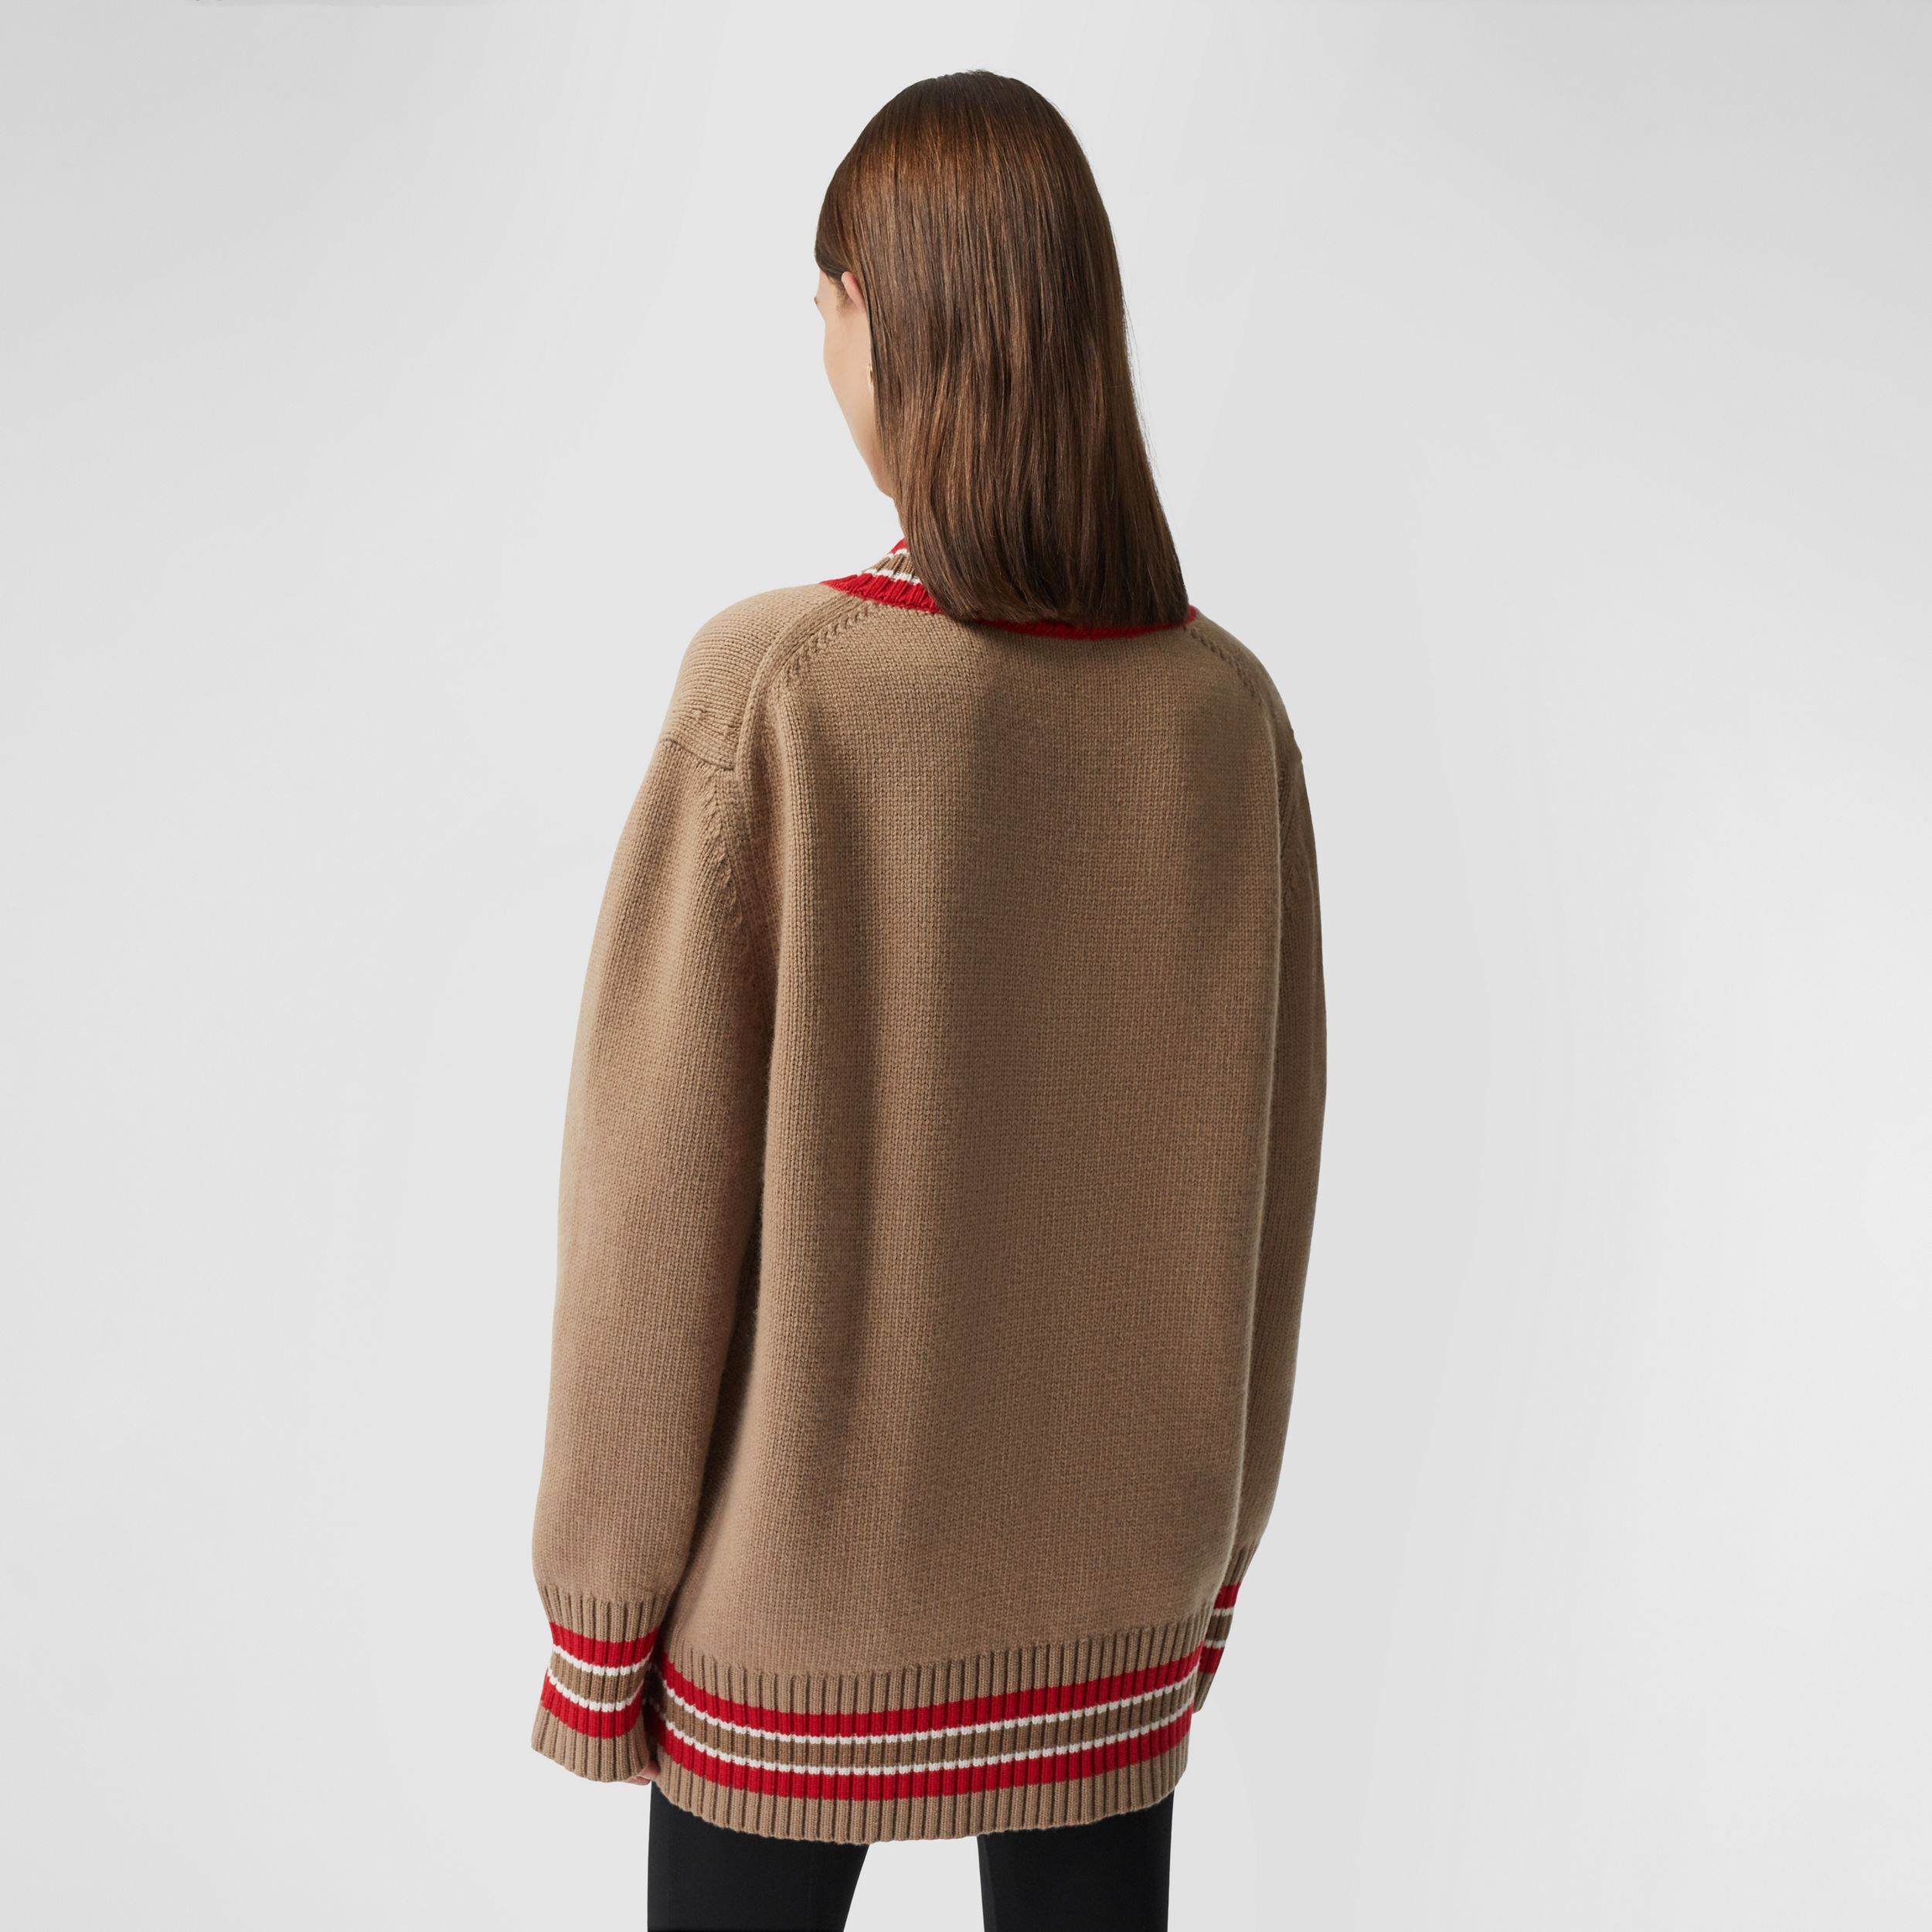 Wool Oversized Cricket Sweater in Camel - Women | Burberry Hong Kong S.A.R. - 3